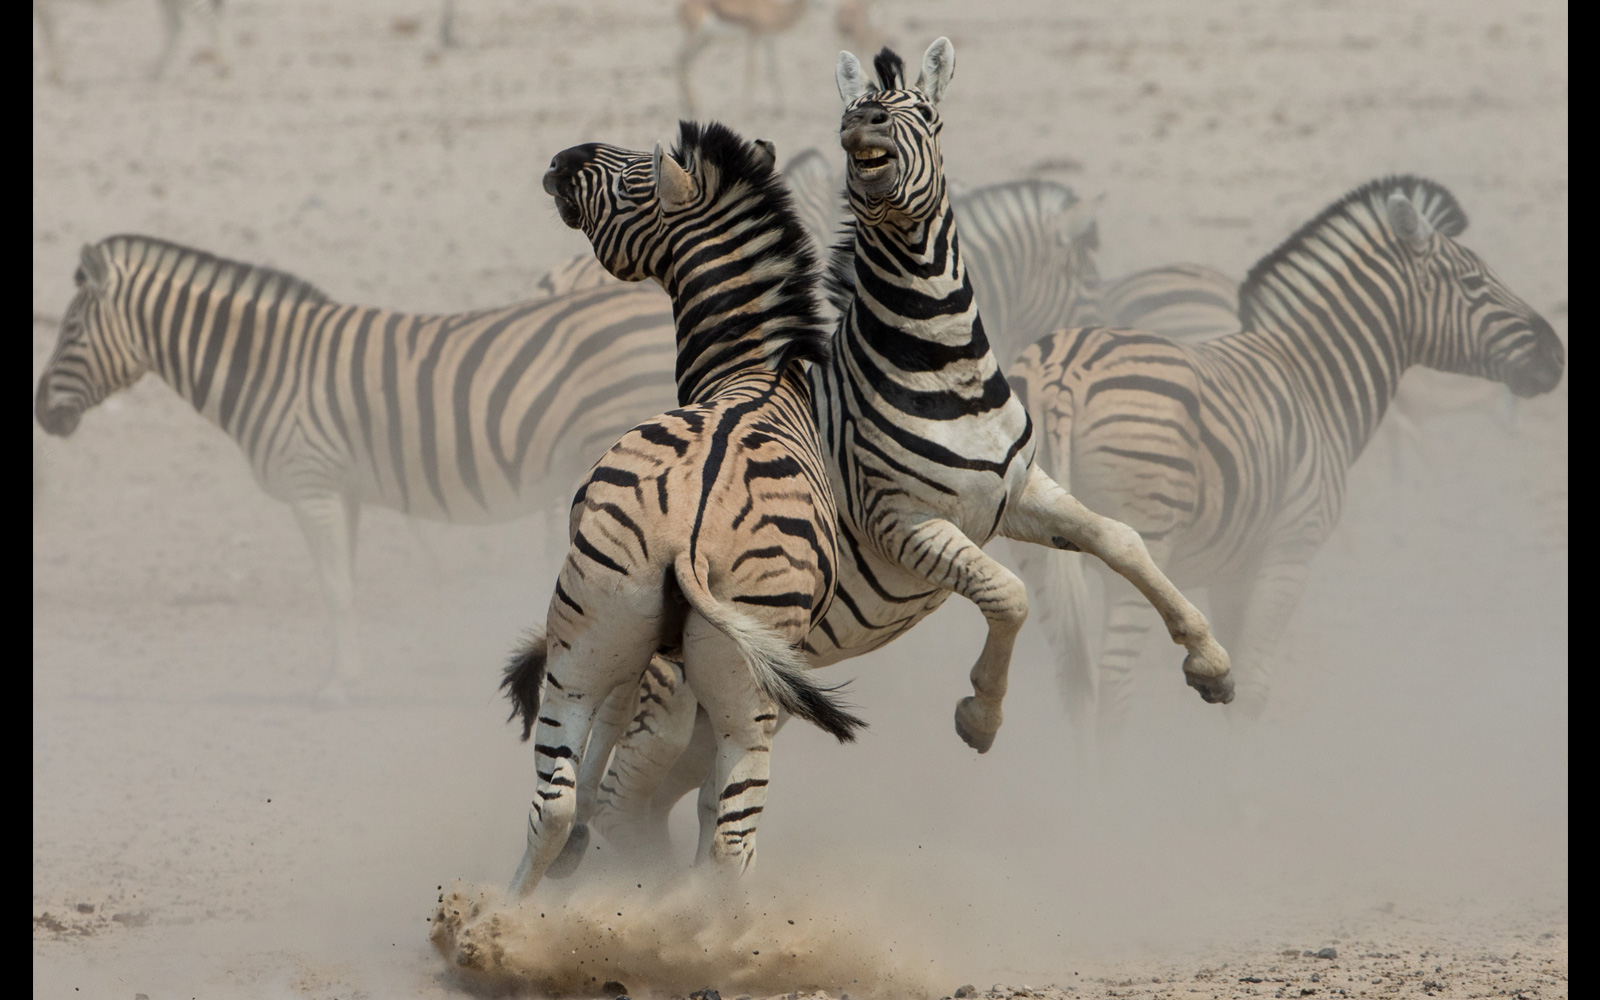 A pair of Burchell's zebras battle it out in the dust in Etosha National Park, Namibia © Inger Vandyke